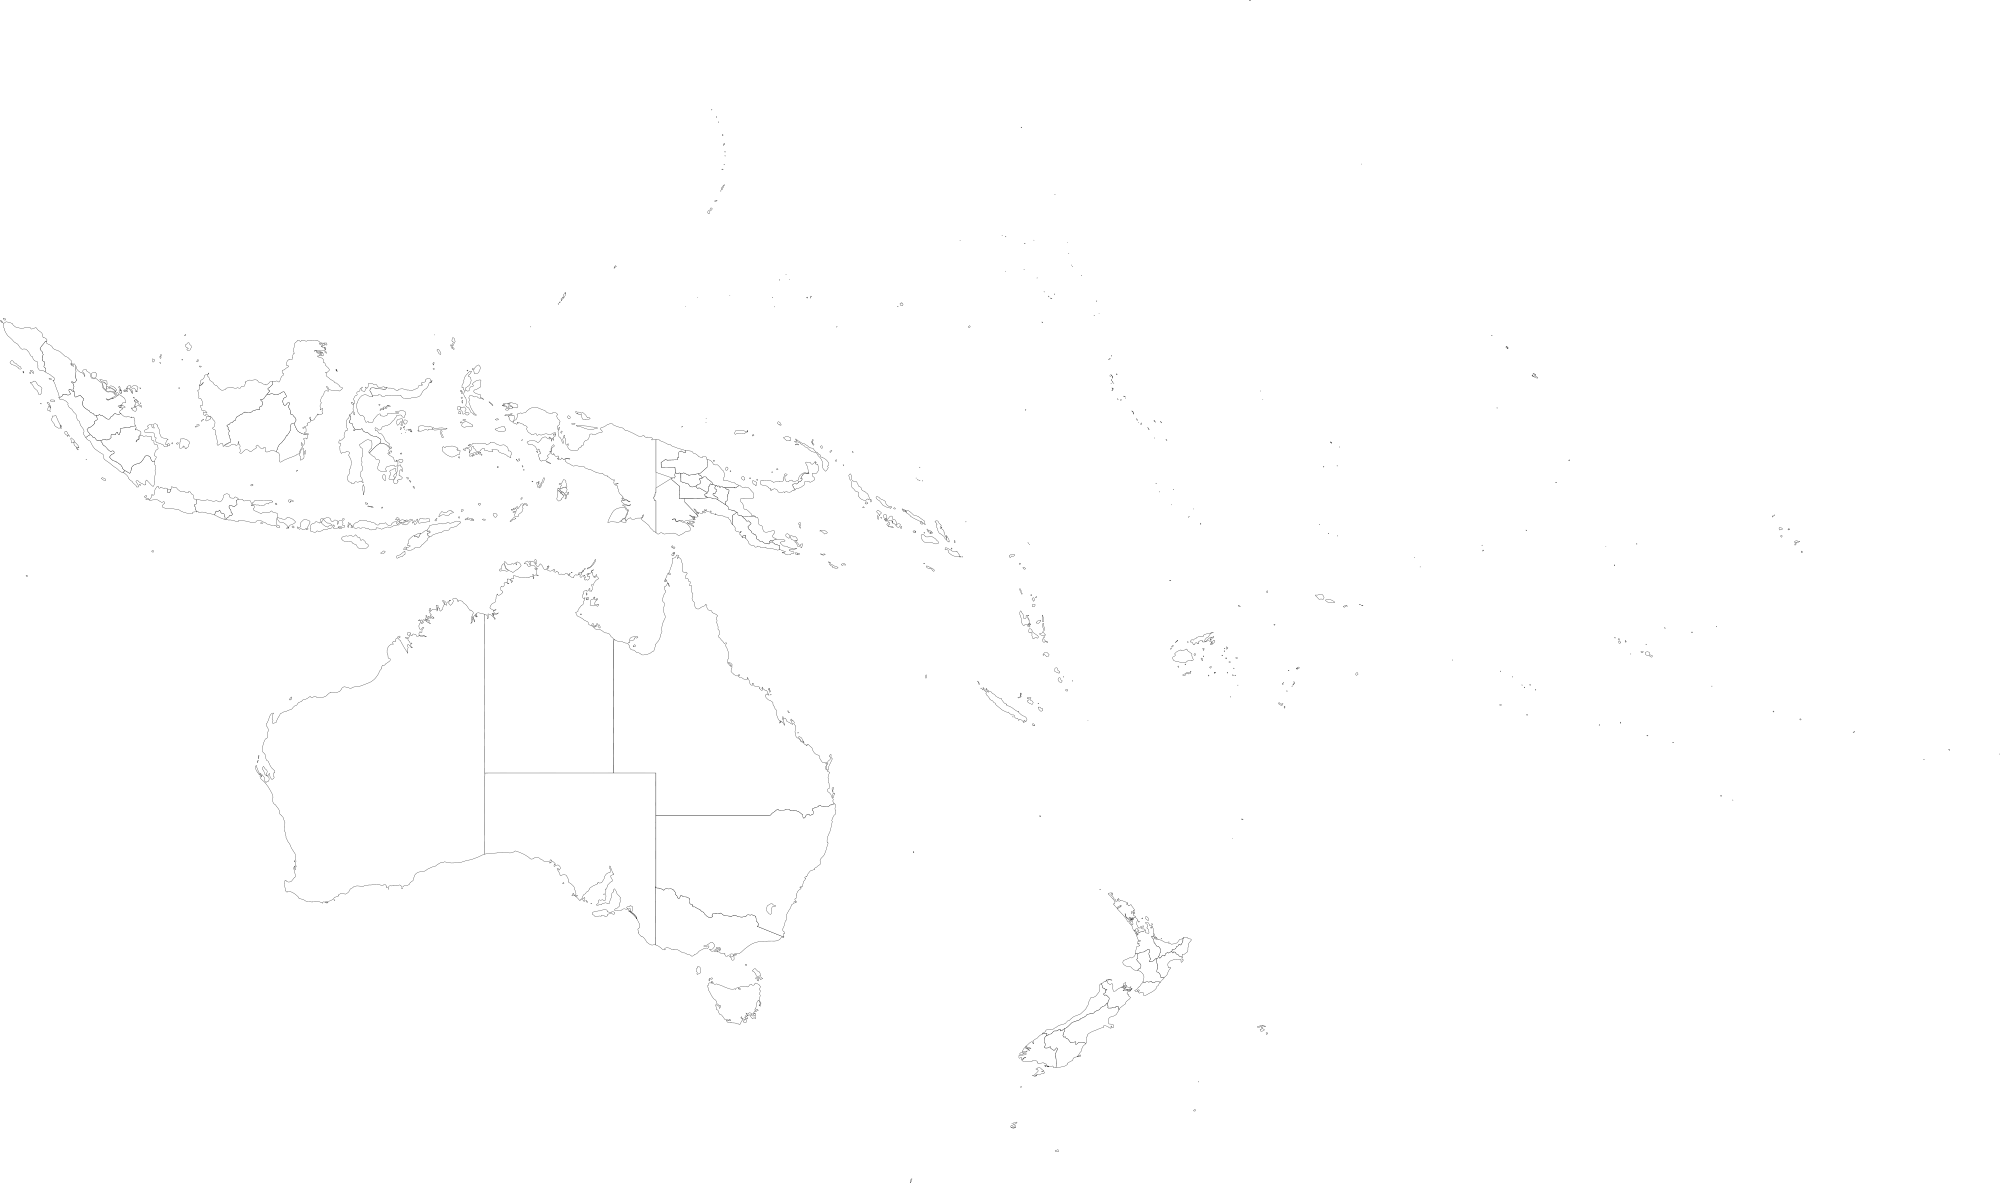 Map of Oceania as of 1998